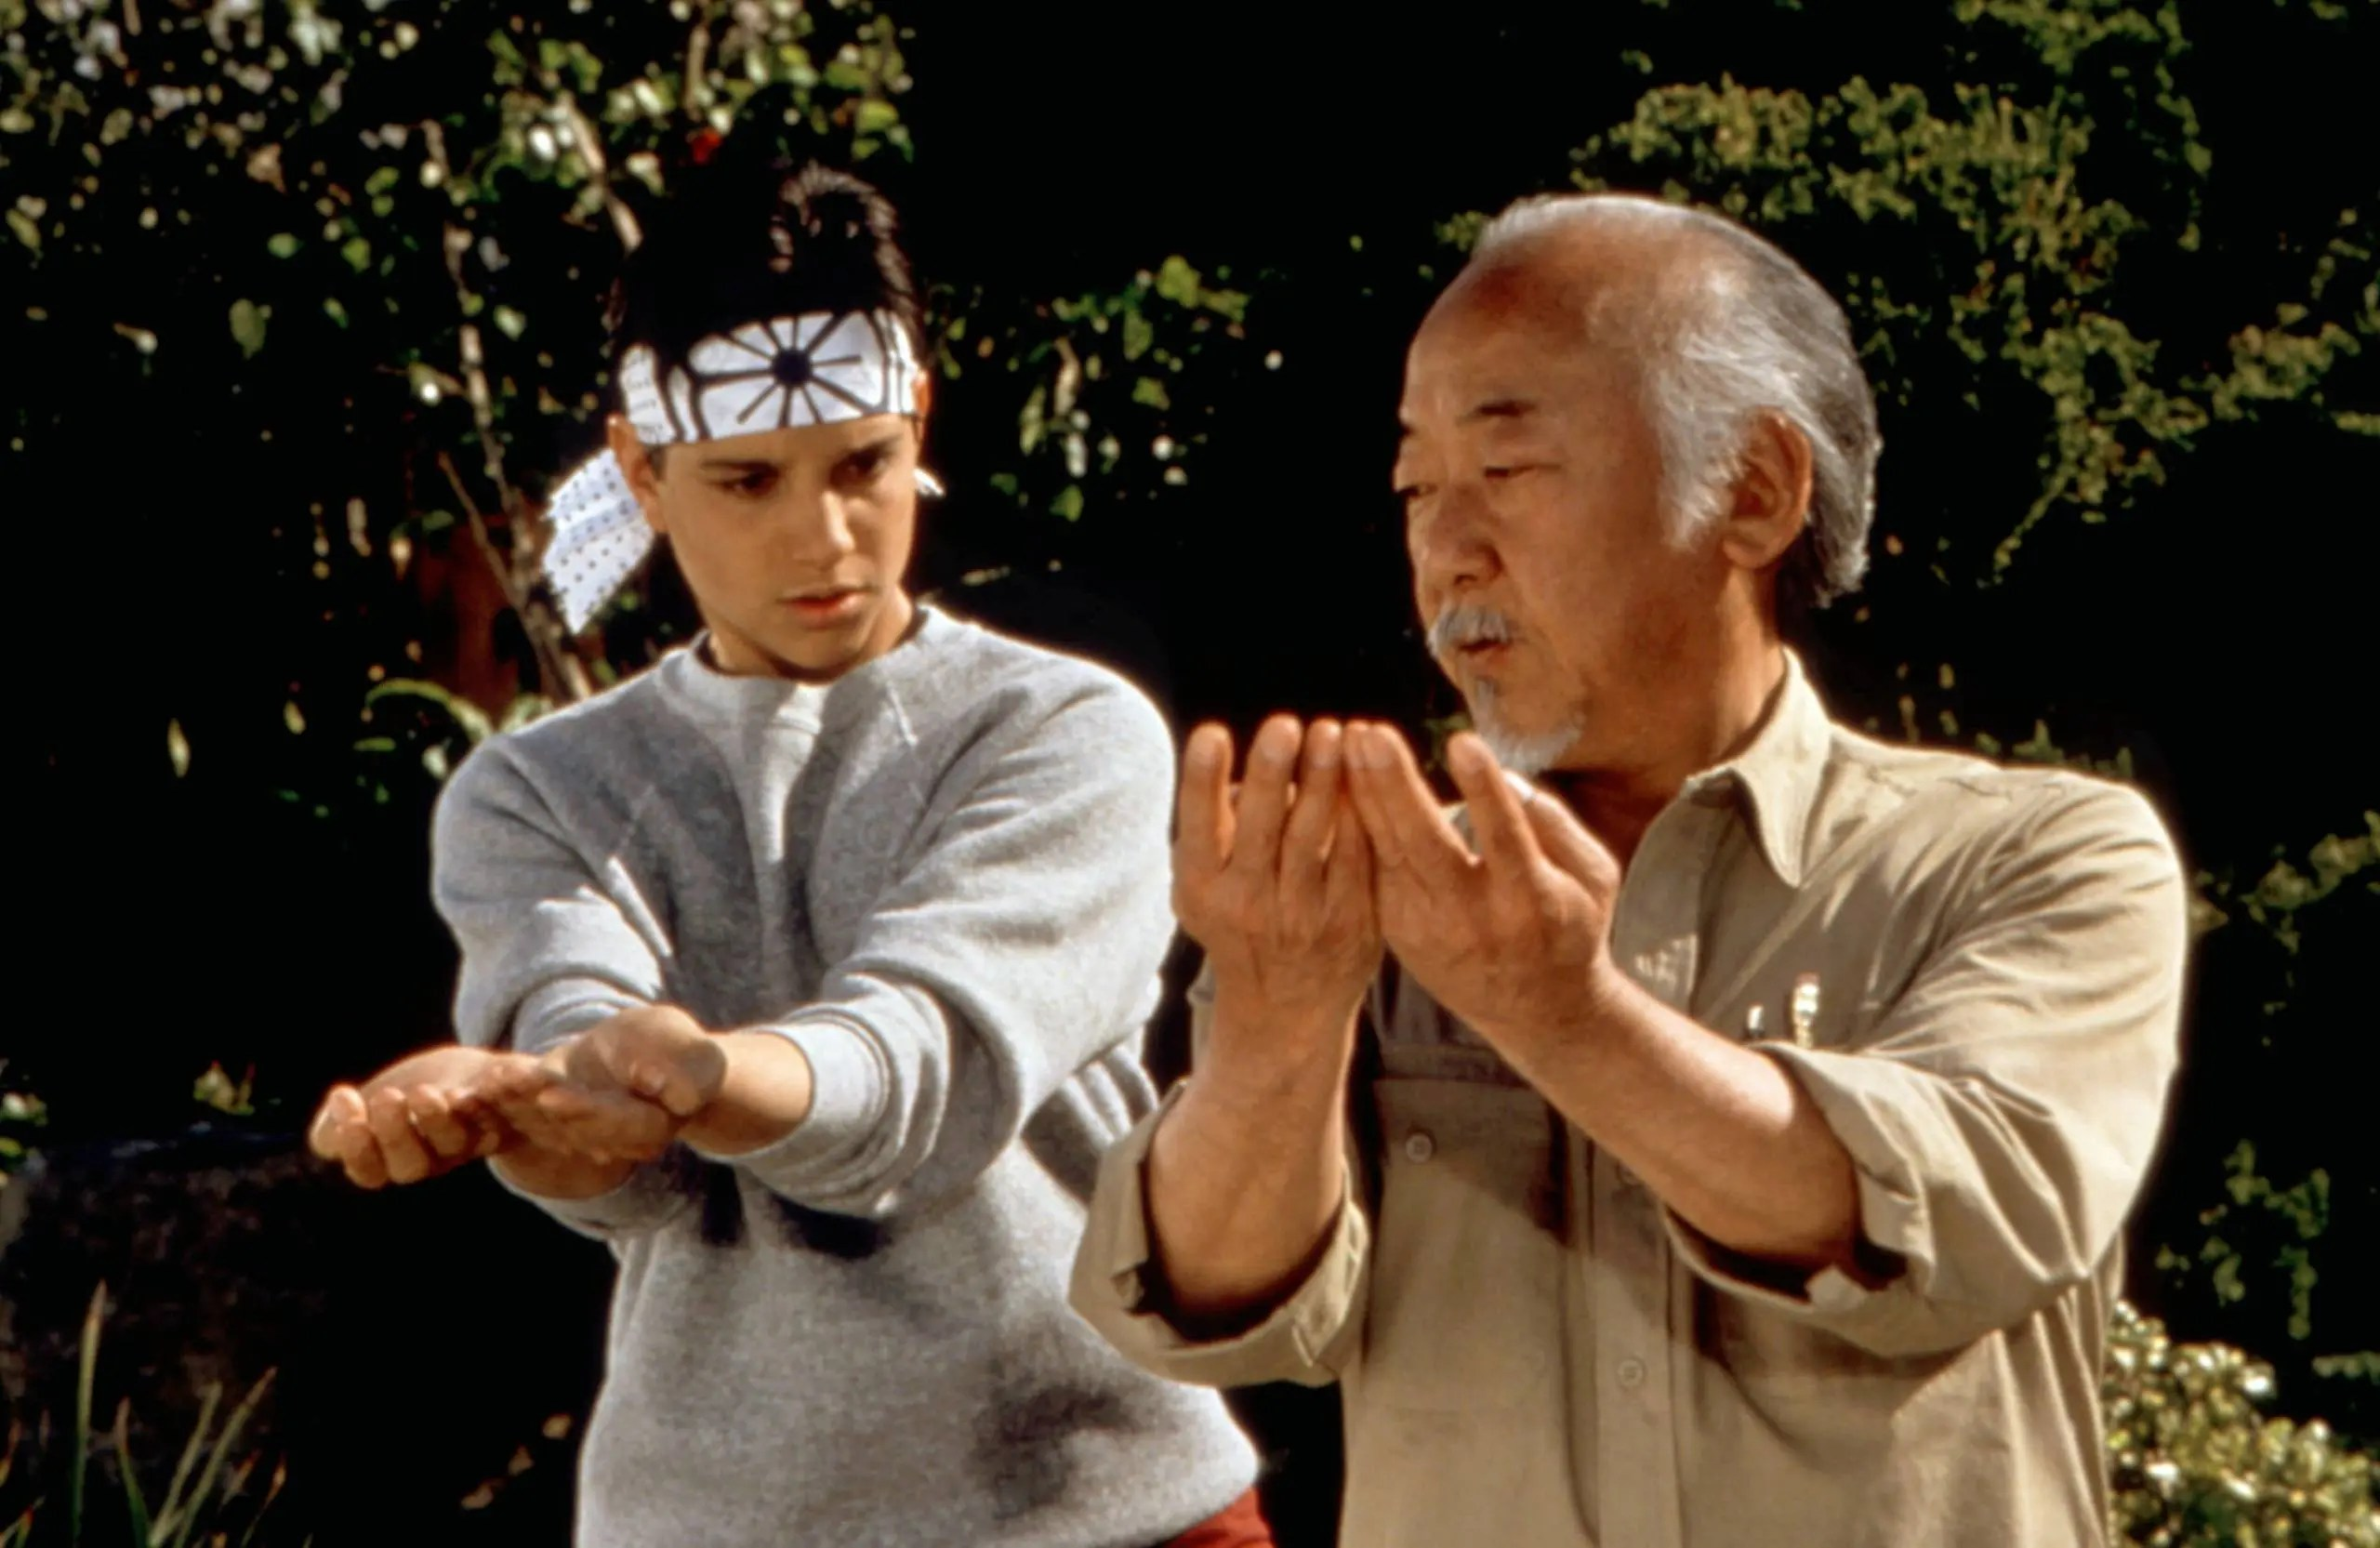 RUNNING BIOMECHANICS AND THE WISDOM OF A 1980S KARATE MASTER